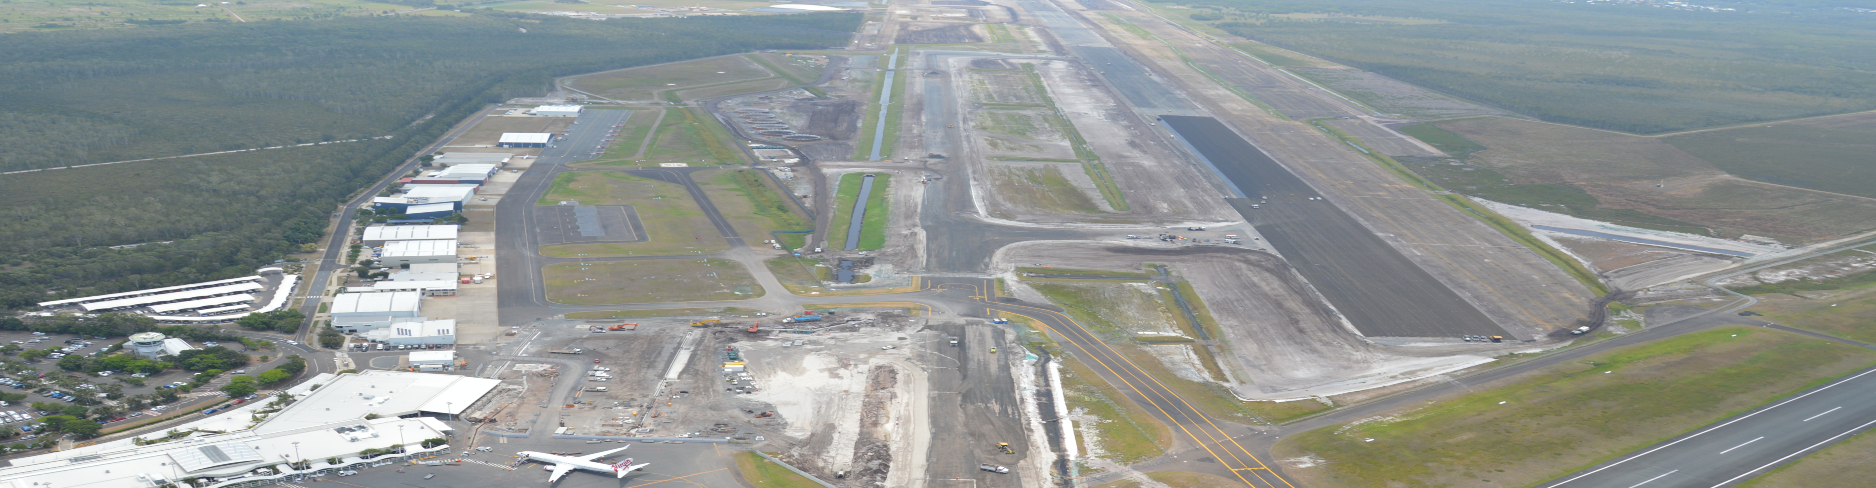 Aerial image of the Sunshine Coast Airport Expansion Project under construction